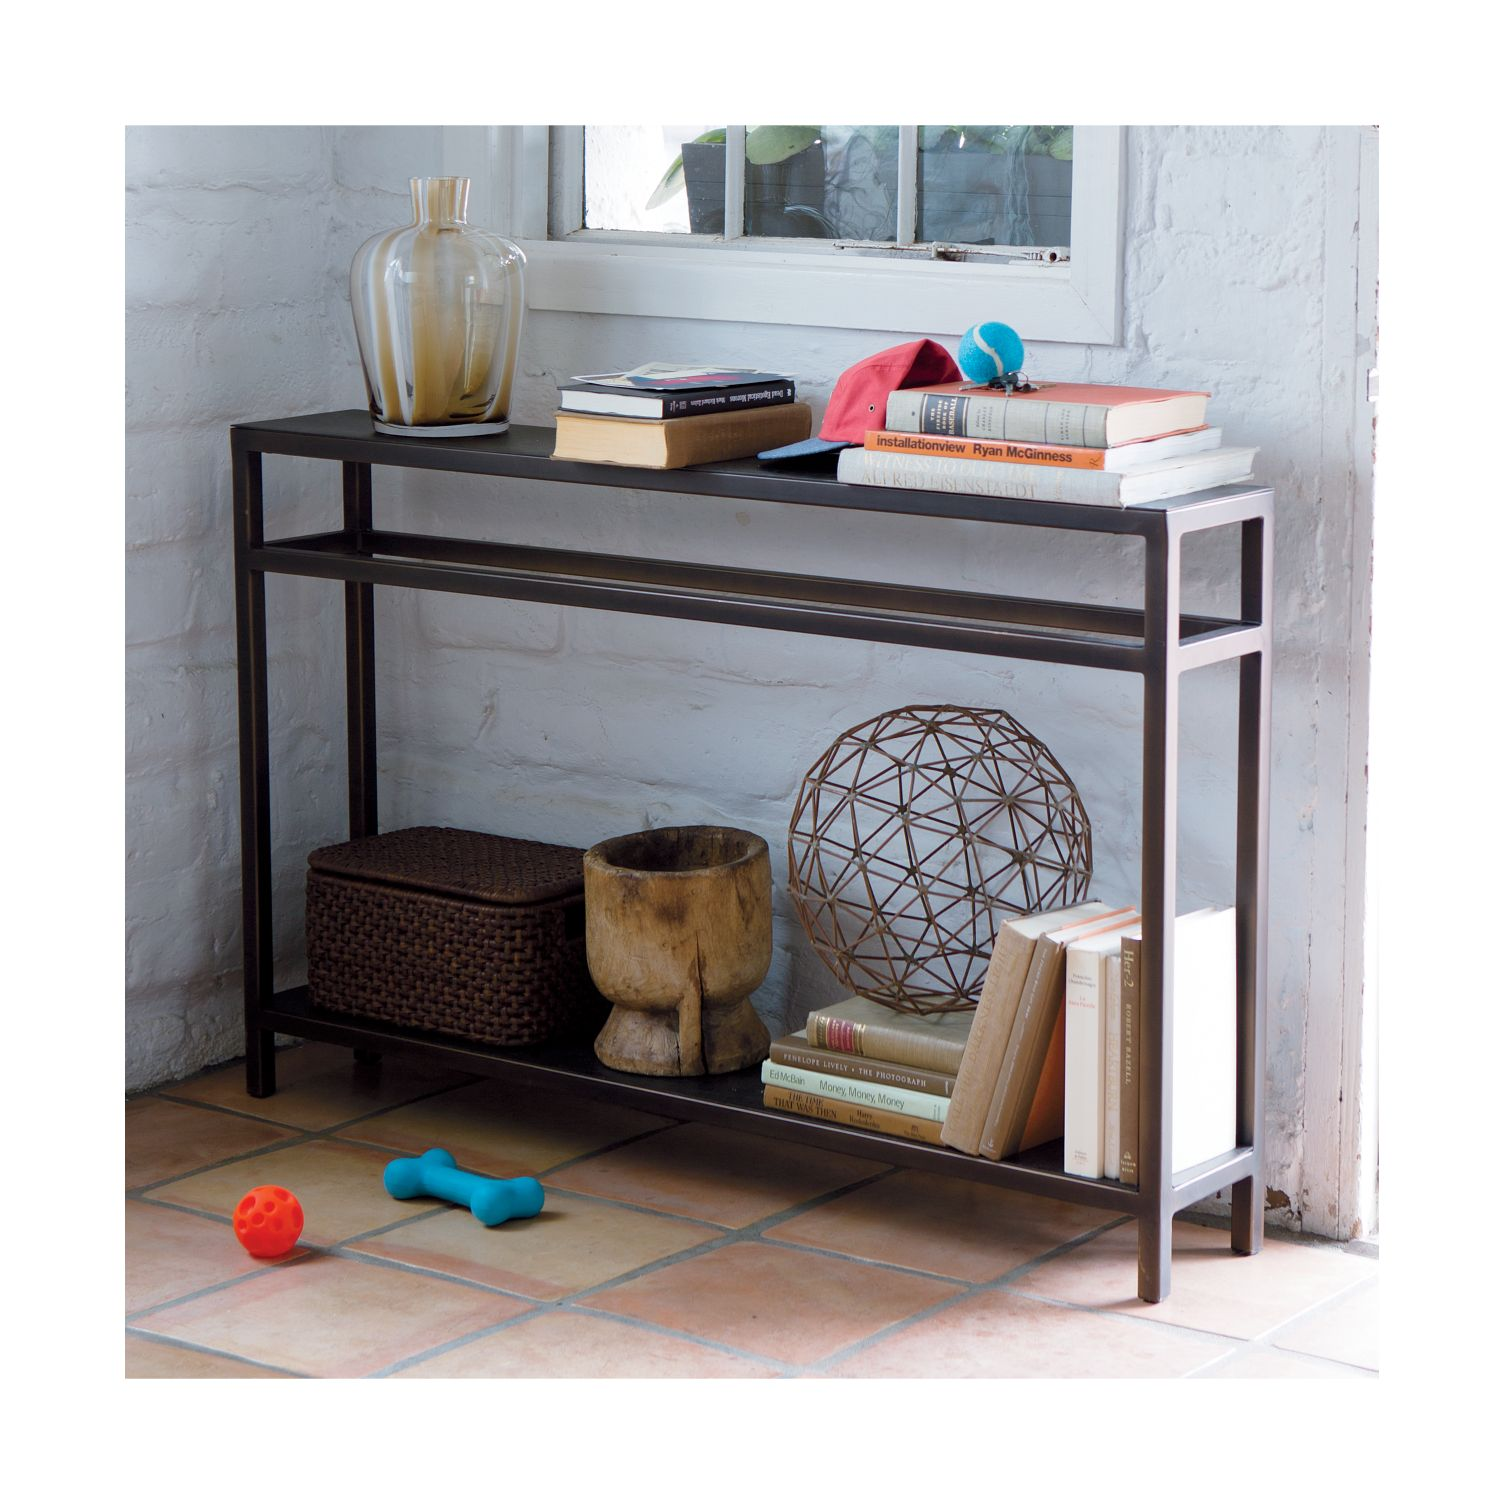 2-level entryway console table